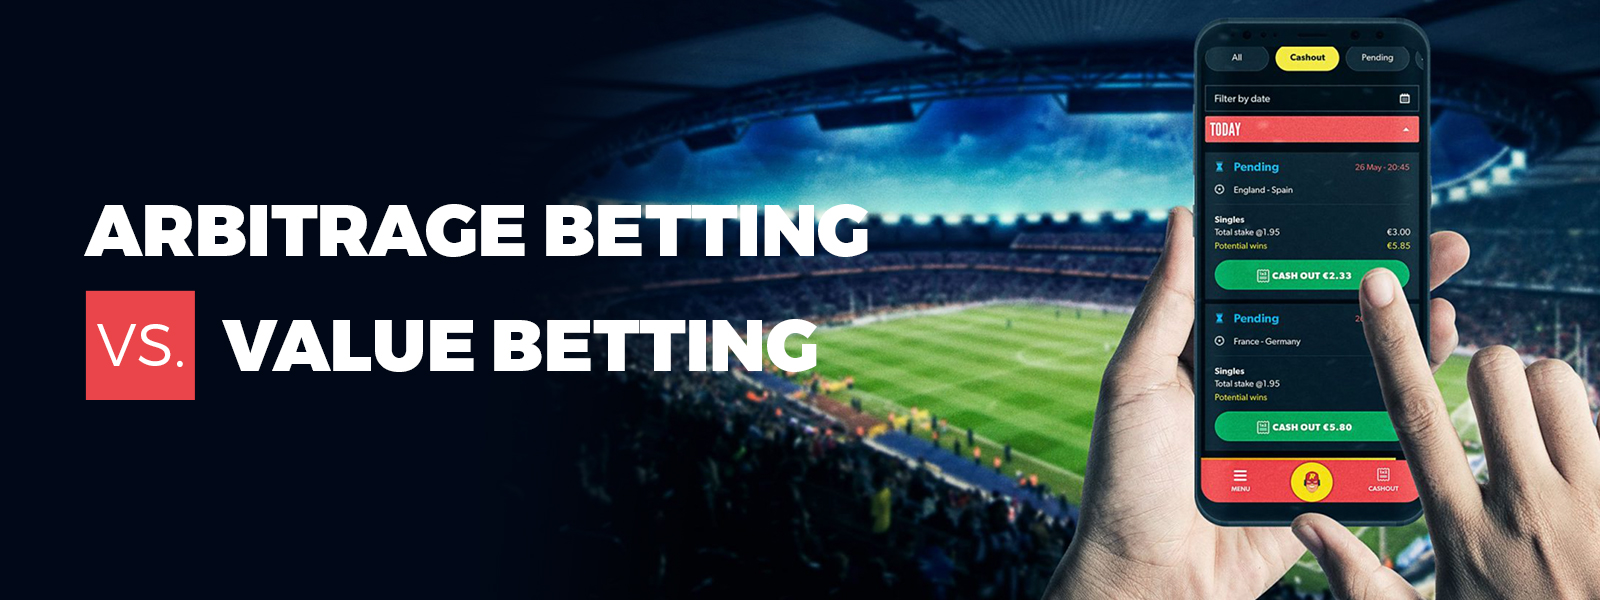 Arbitrage Betting And Value Betting